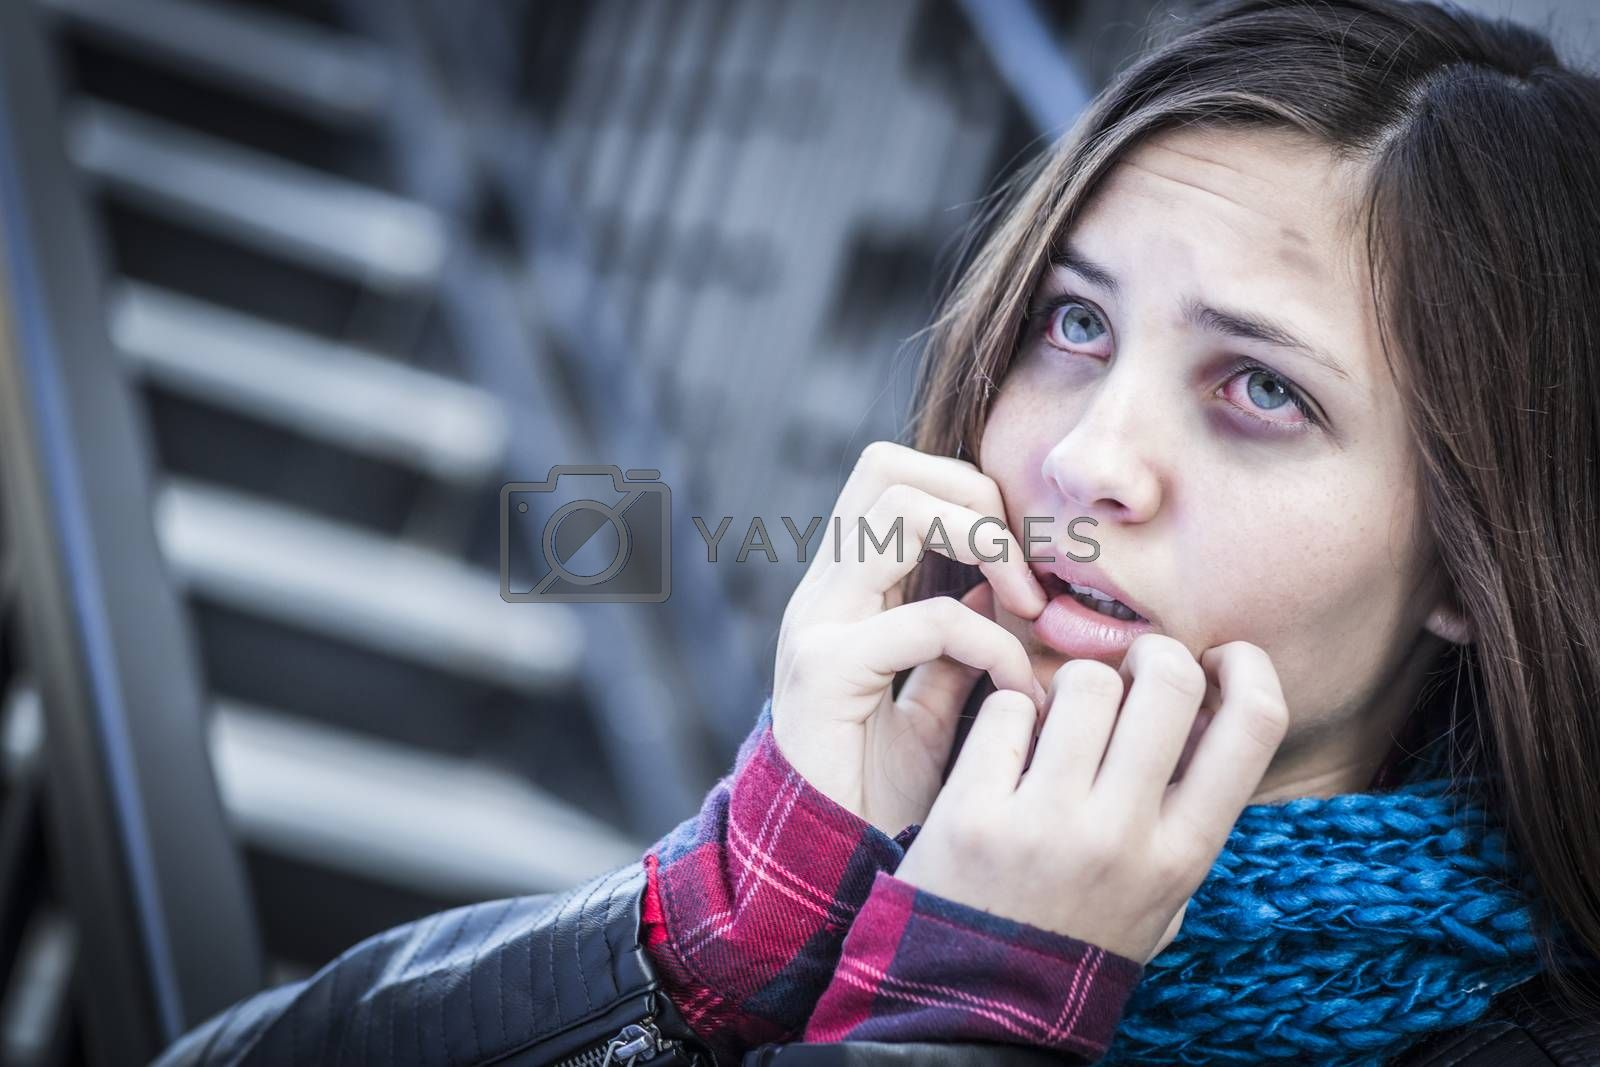 Royalty free image of Young Bruised and Frightened Girl on Staircase by Feverpitched